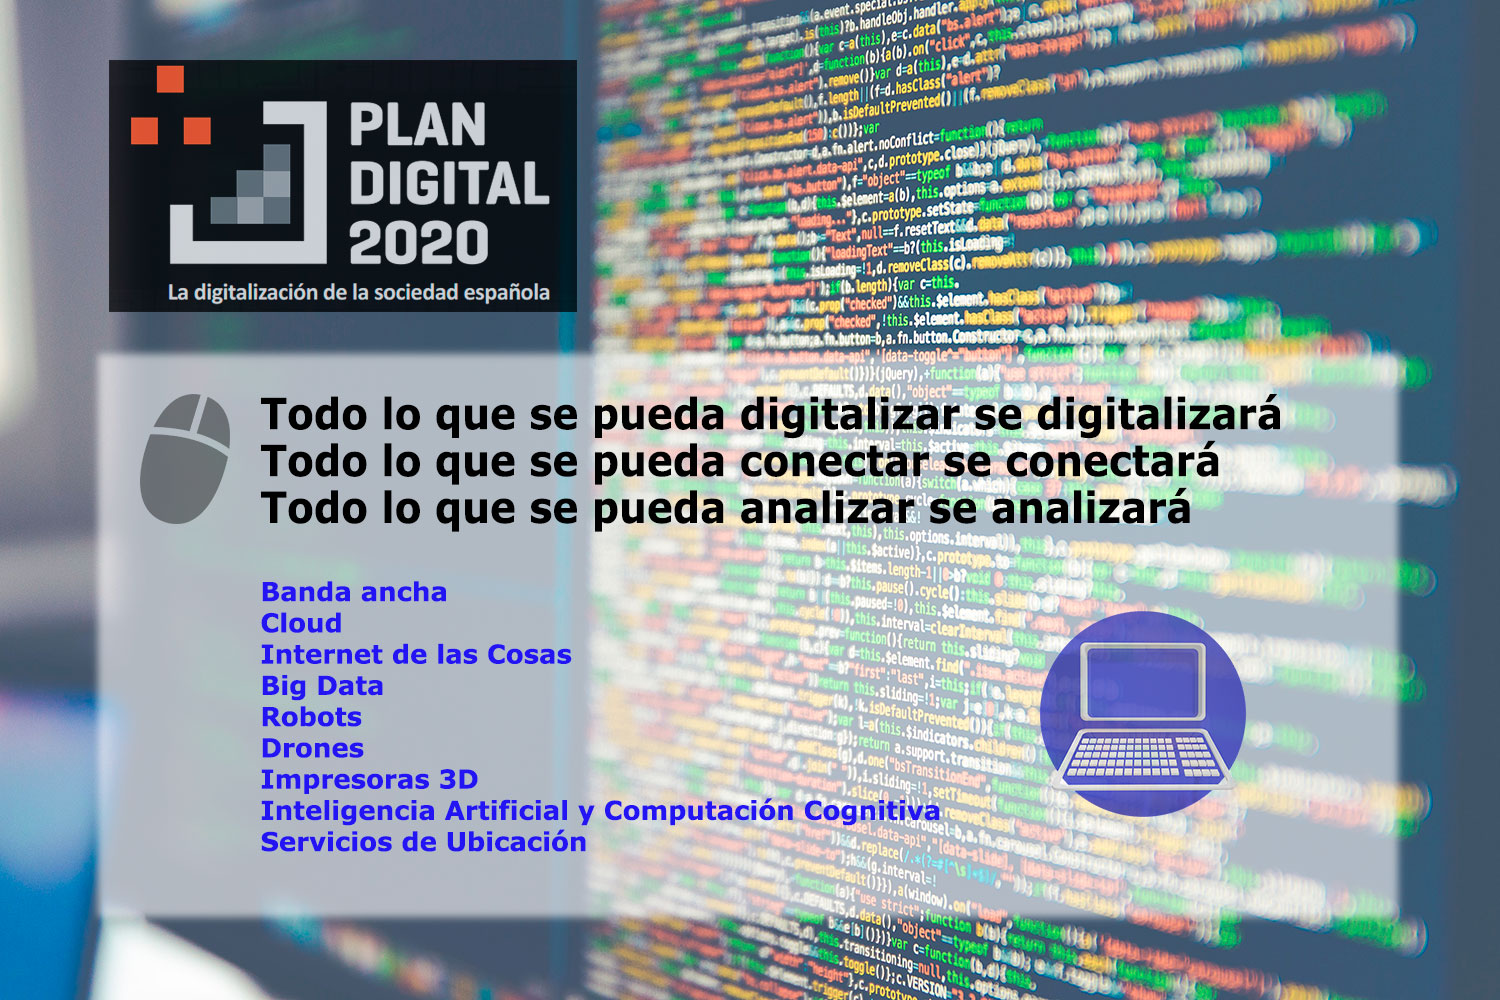 Plan Digital 2020